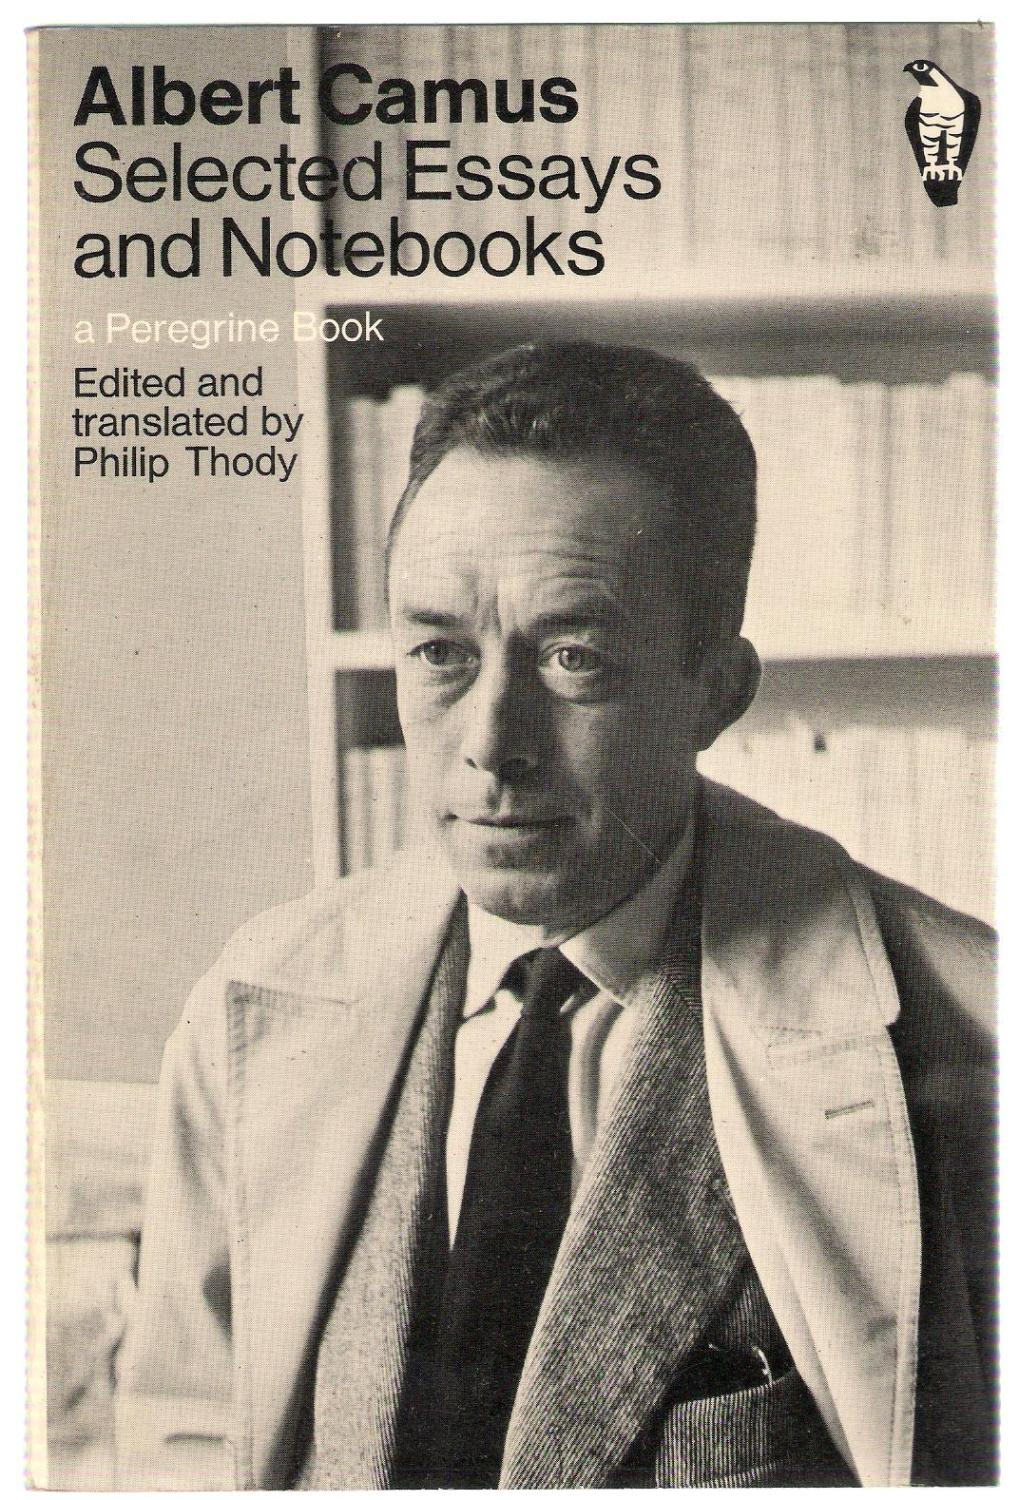 albert camus selected essays and notebooks Albert camus was born in mondovi, algeria, into a working-class family camus's mother, catherine hélène sintés, was an illiterate cleaning woman she came from a family of spanish origin.